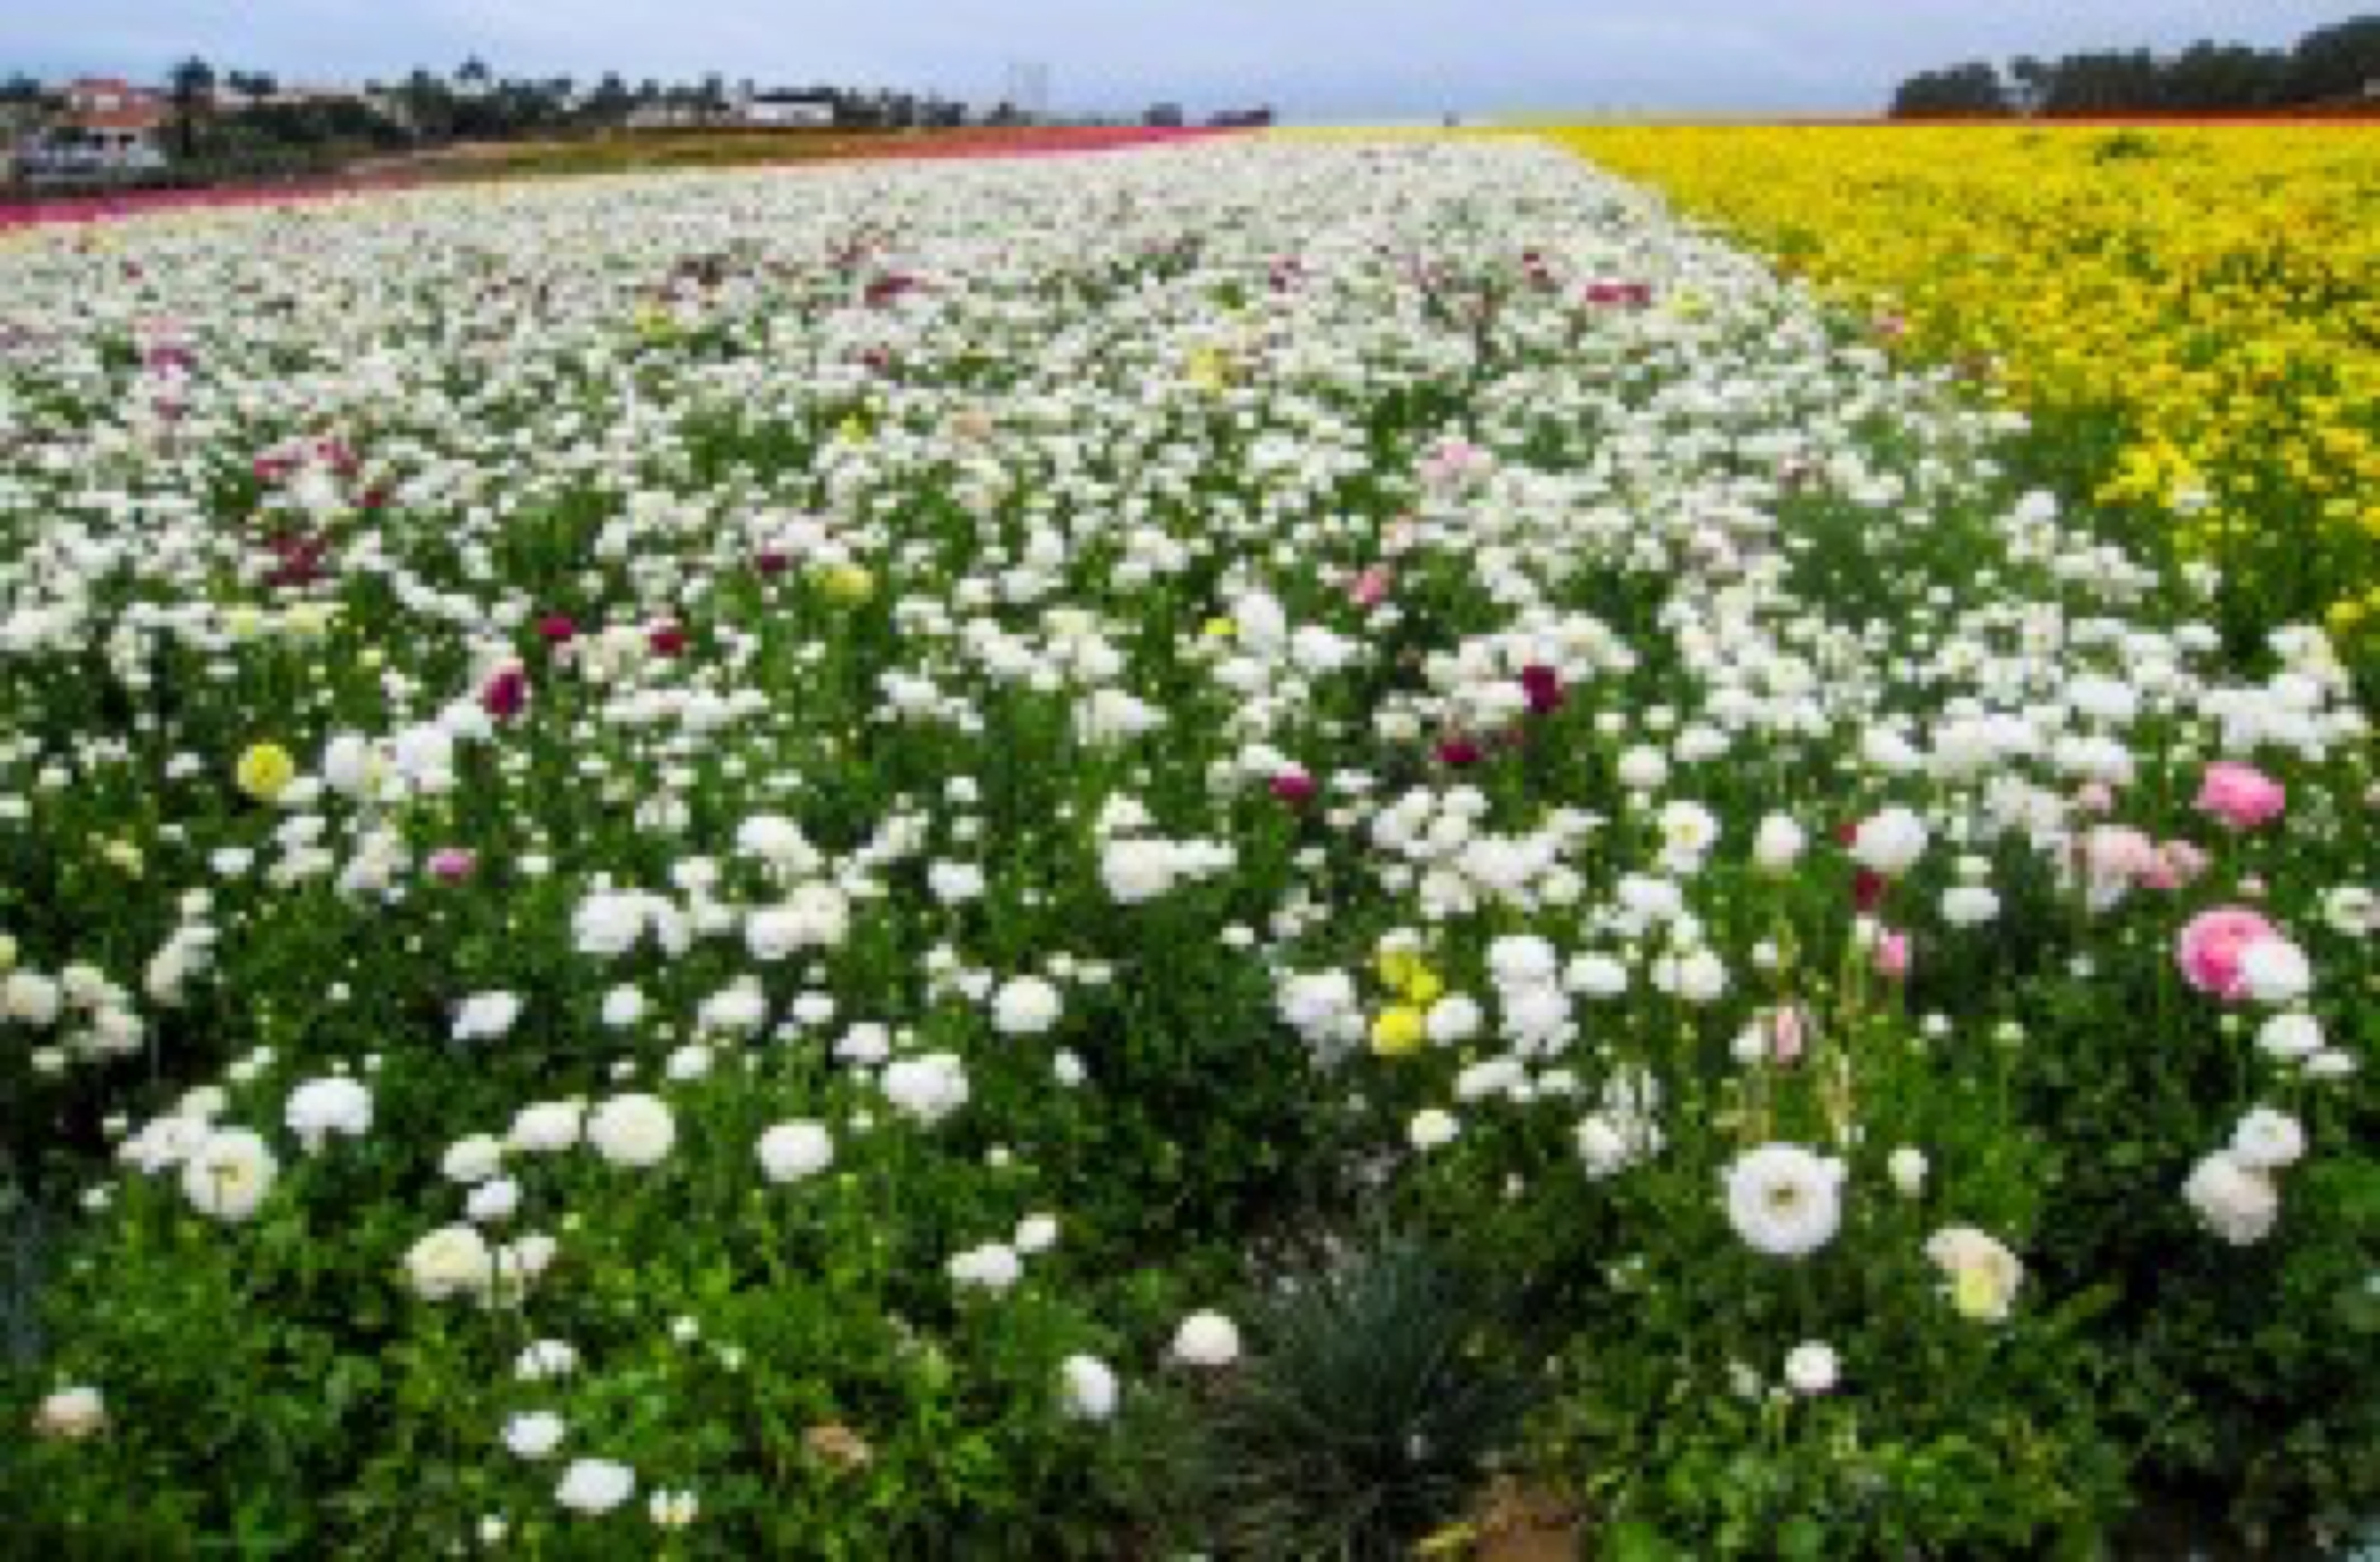 and more flower fields